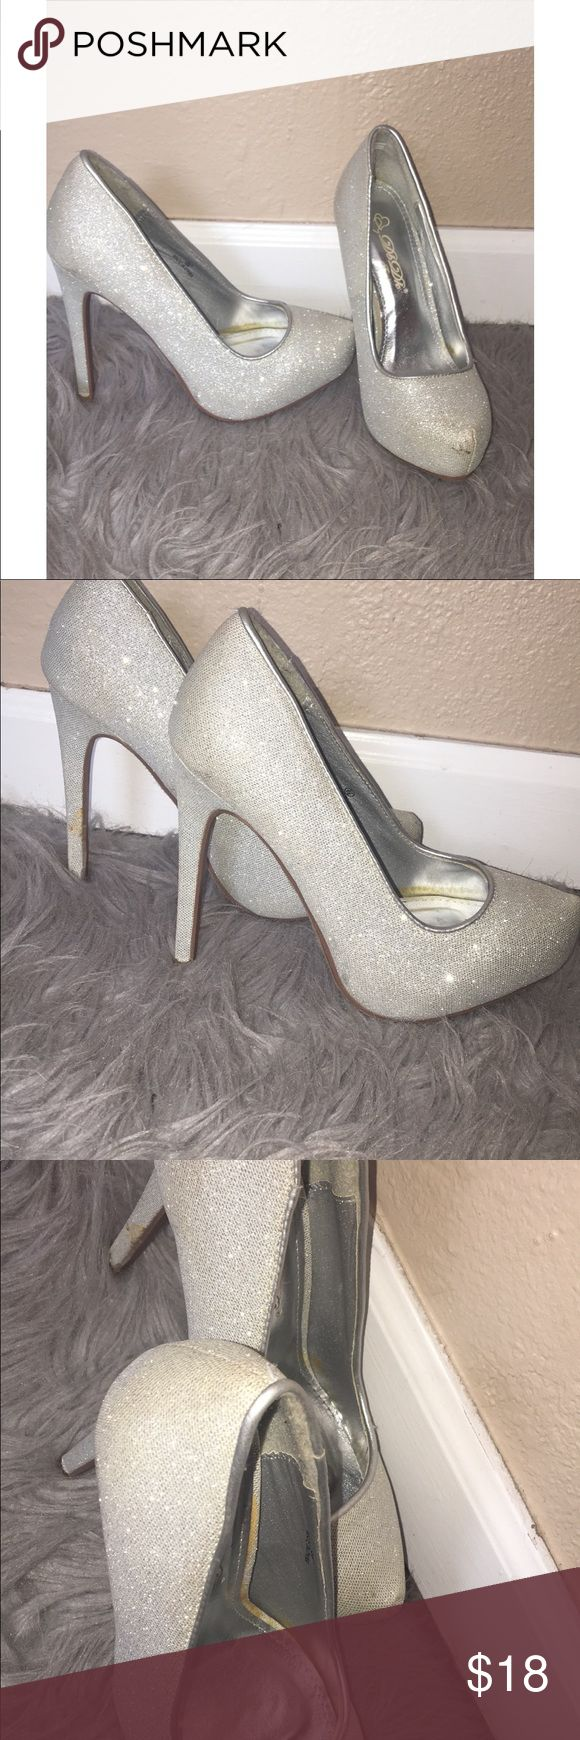 Silver sparkly heels! Wore them once for prom.  Silver sparkly heels! Worn once.  they were stored for a while so the inside has a little bit of yellowing. Perfect for any special occasion. Size 6 1/2 Shoes Heels